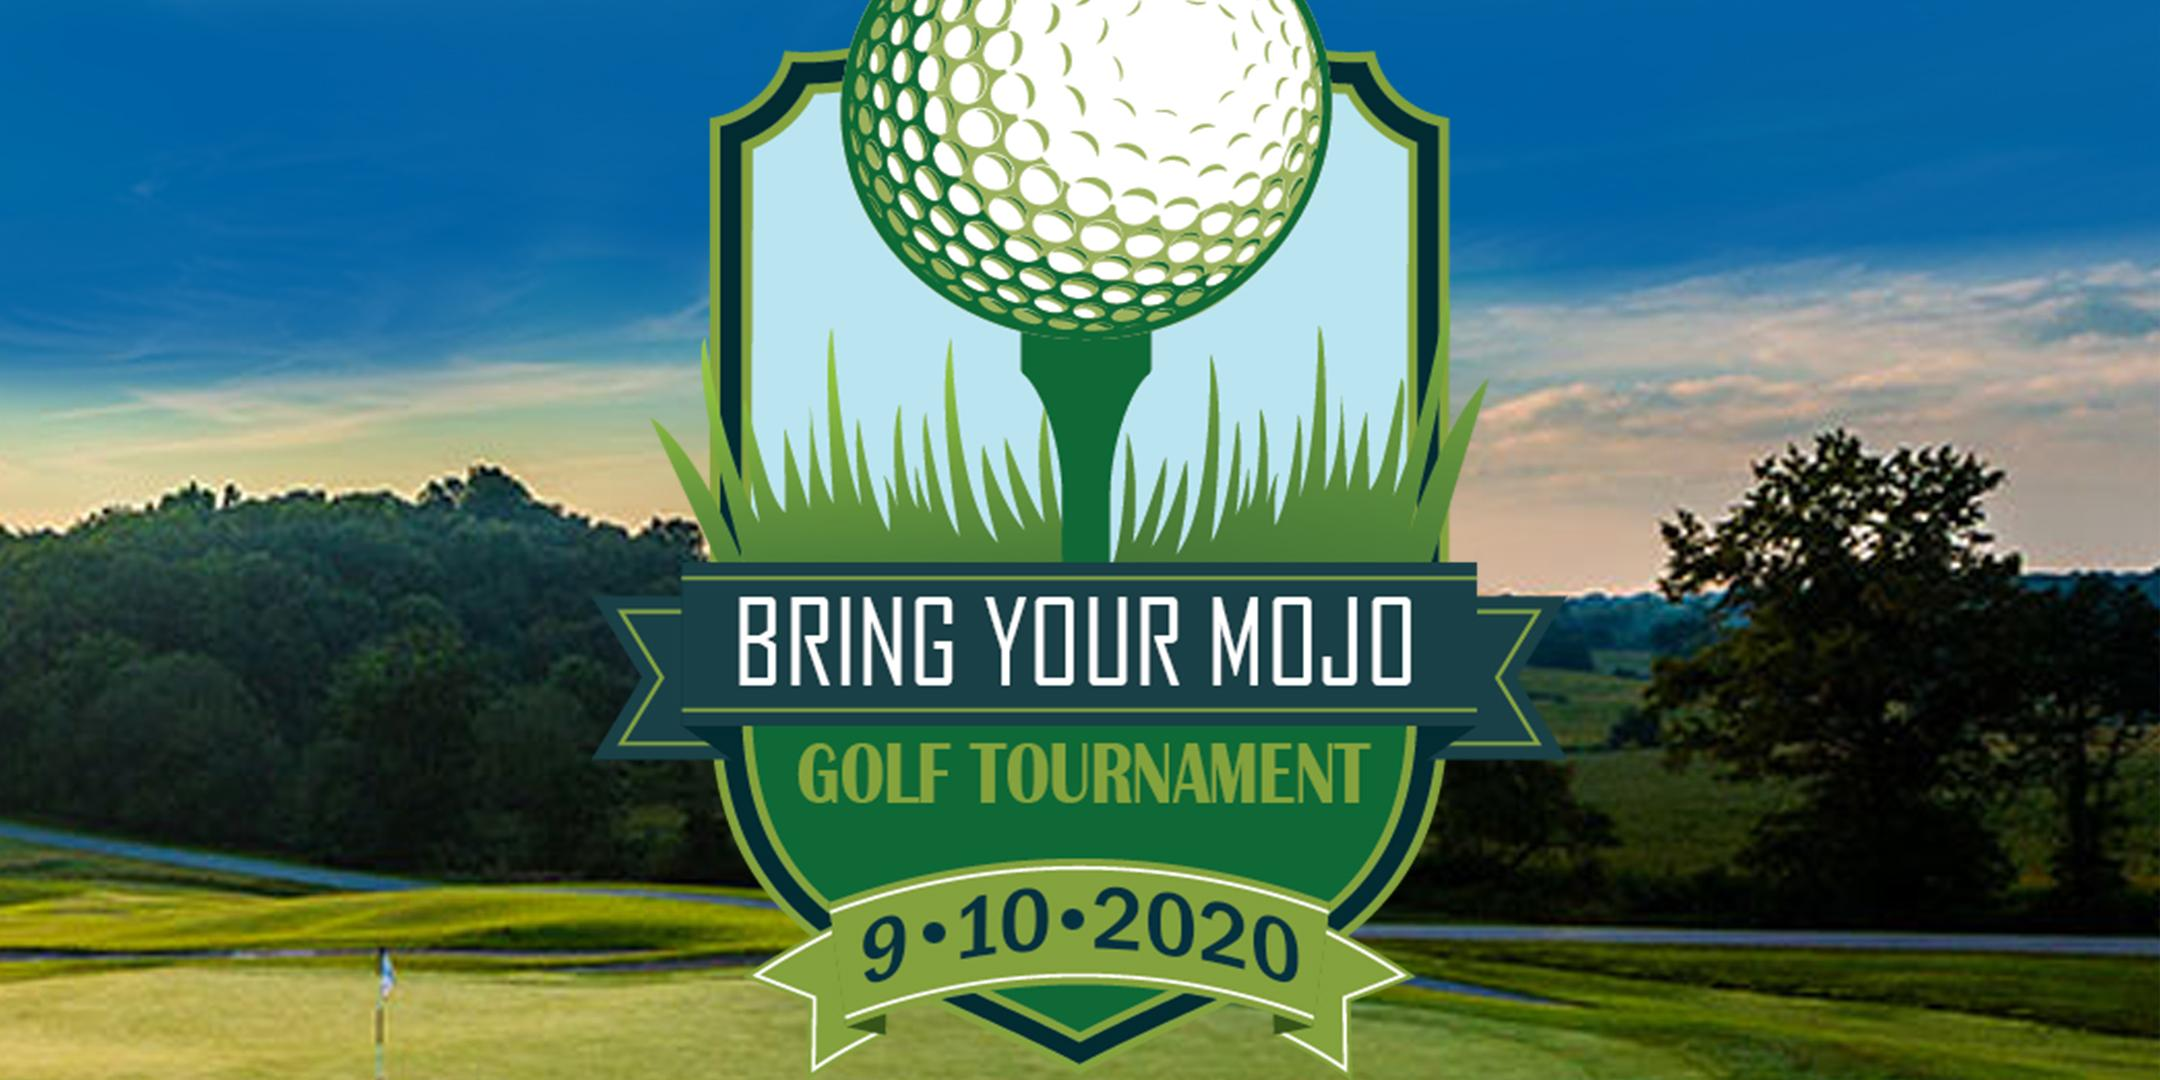 Bring your MOJO Golf Tournament 2020